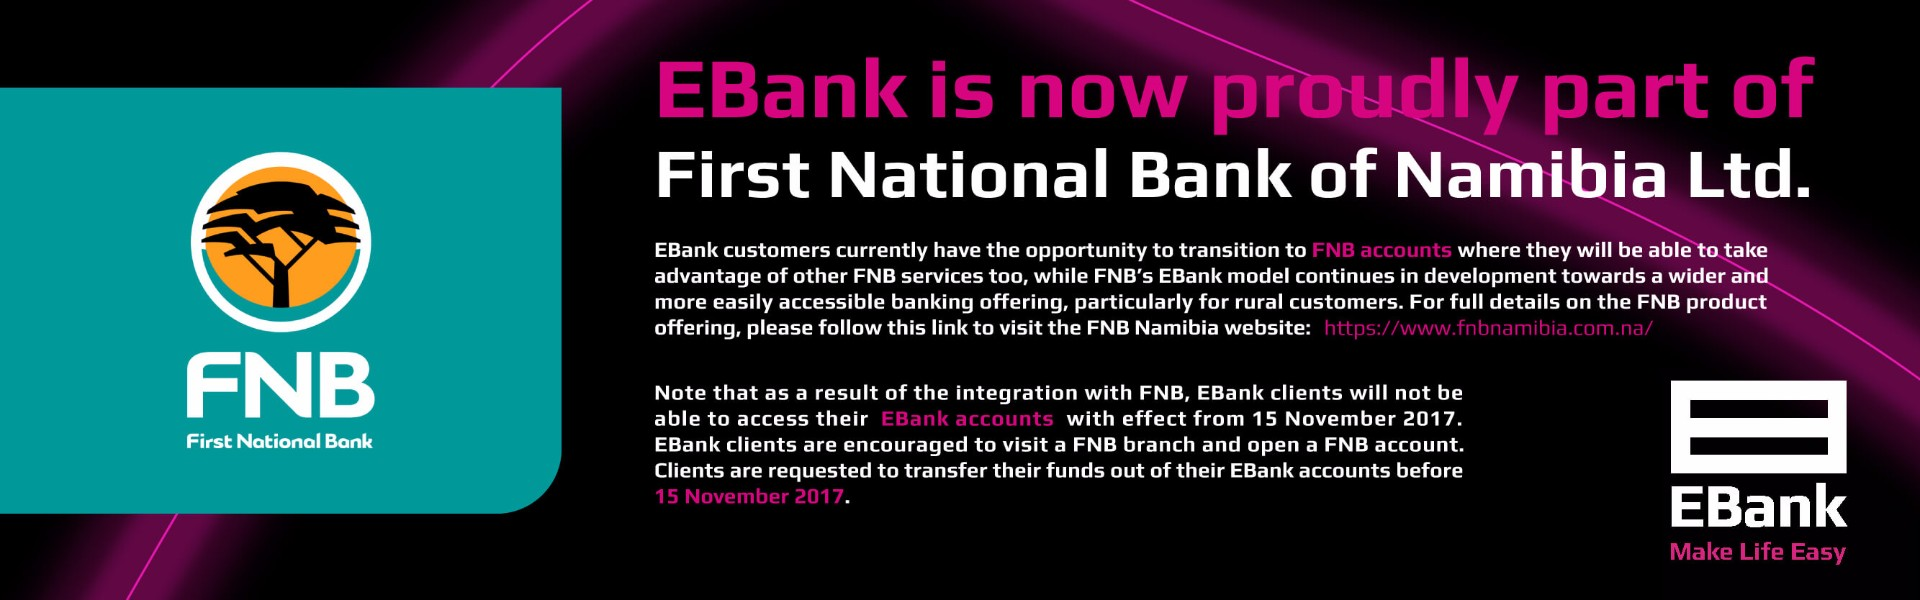 EBank is now proudly part of First National Bank of Namibia Ltd